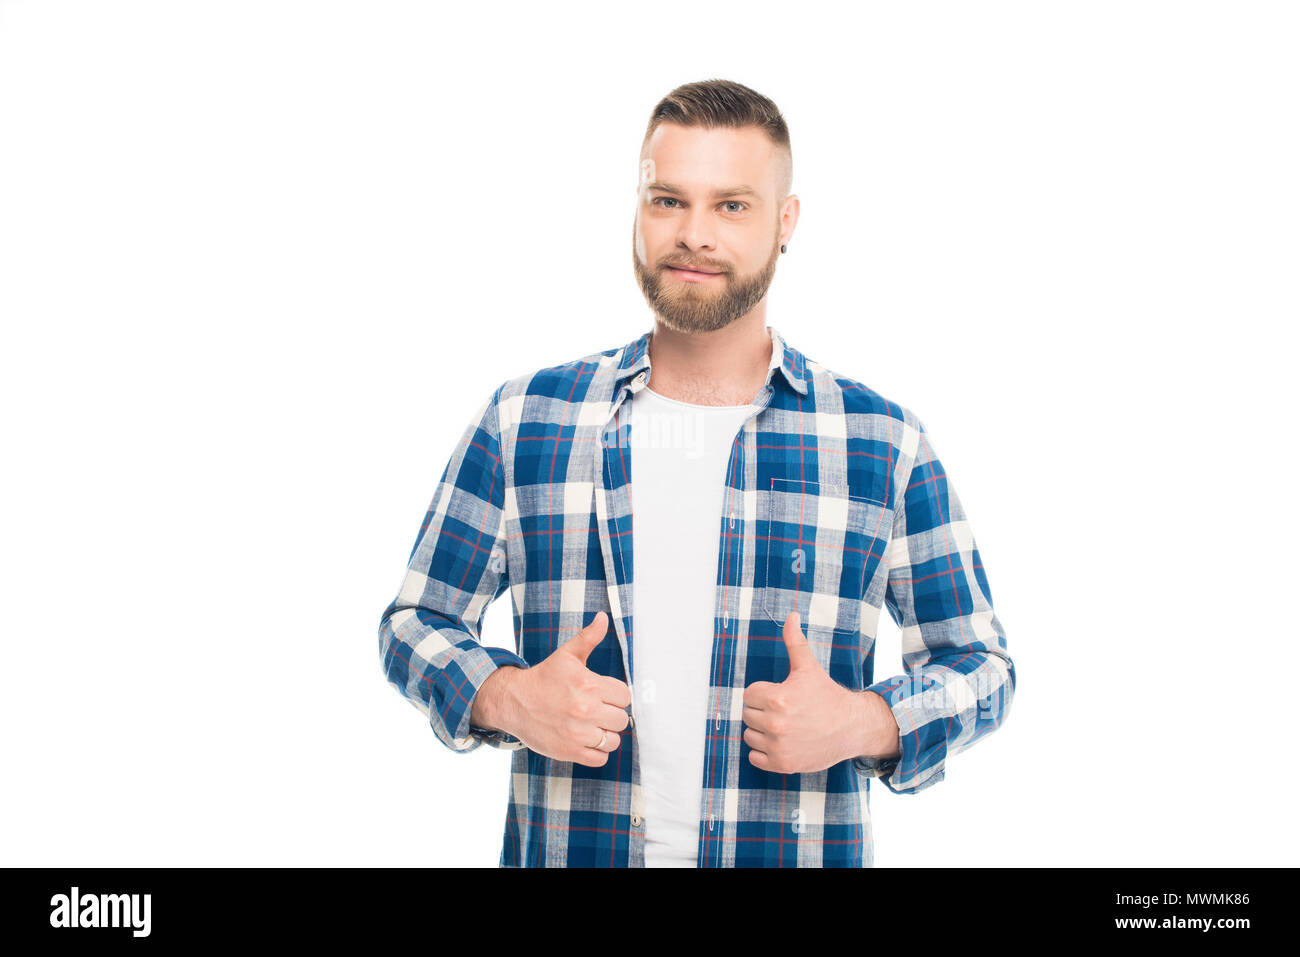 8affb0cba3d Bearded man in blue checkered shirt standing with thumbs up ...